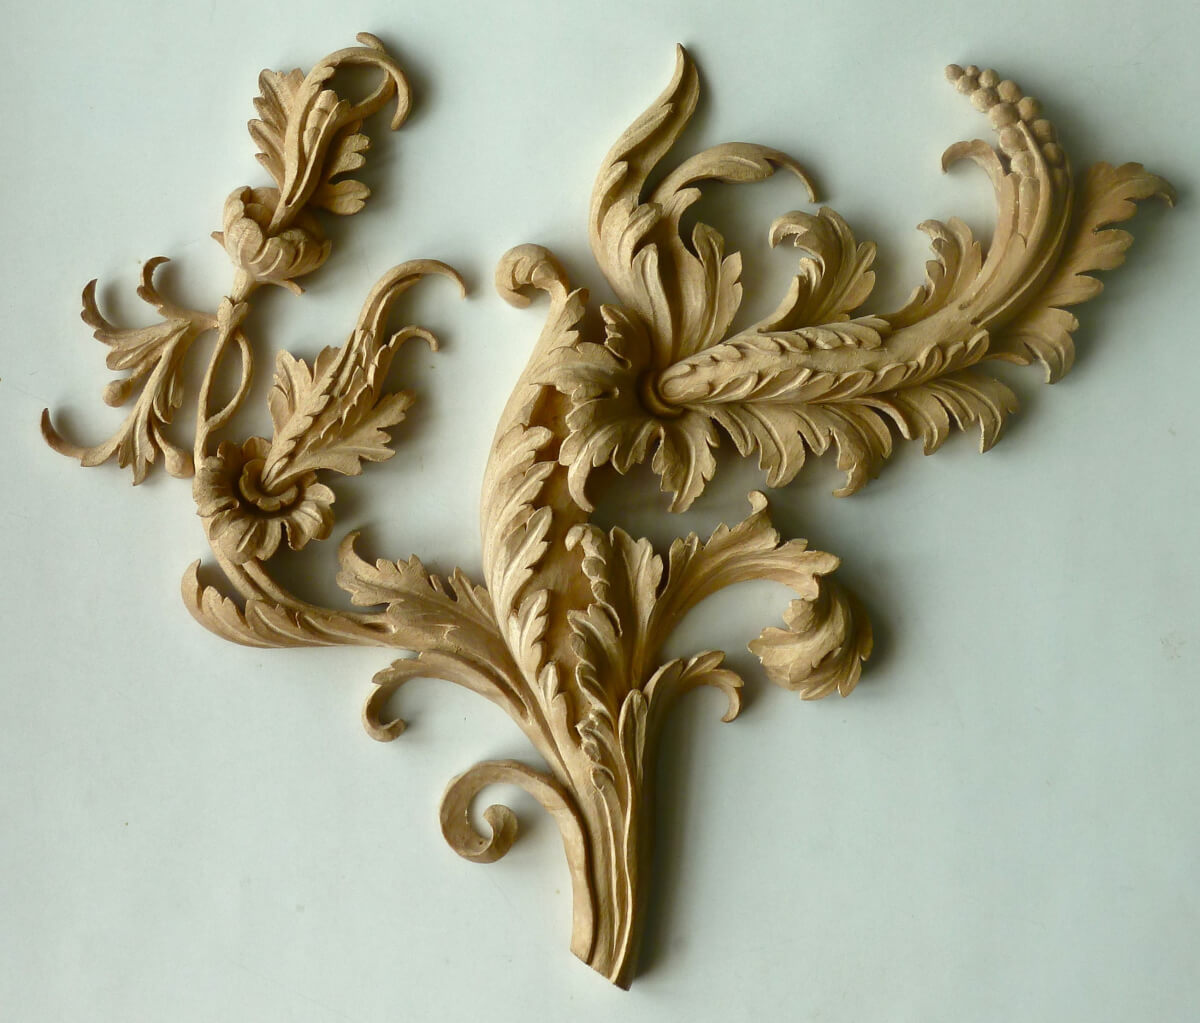 Acanthus leaf scroll woodcarving by Agrell Architectural Carving